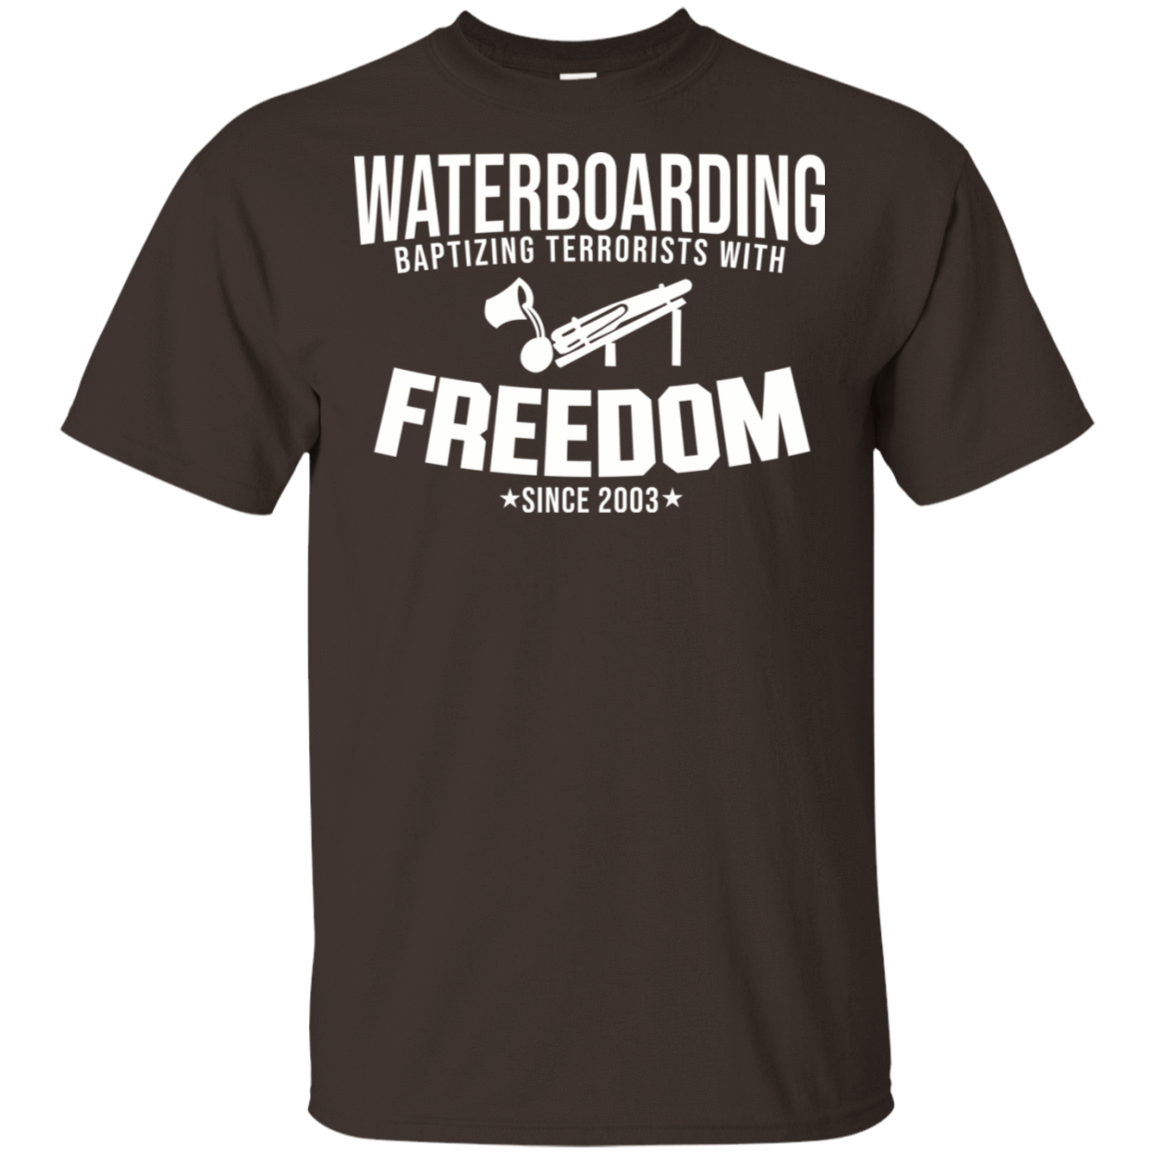 Waterboarding Baptising Terrorists With Freedom 22-2283-74046428-12087 - Tee Ript